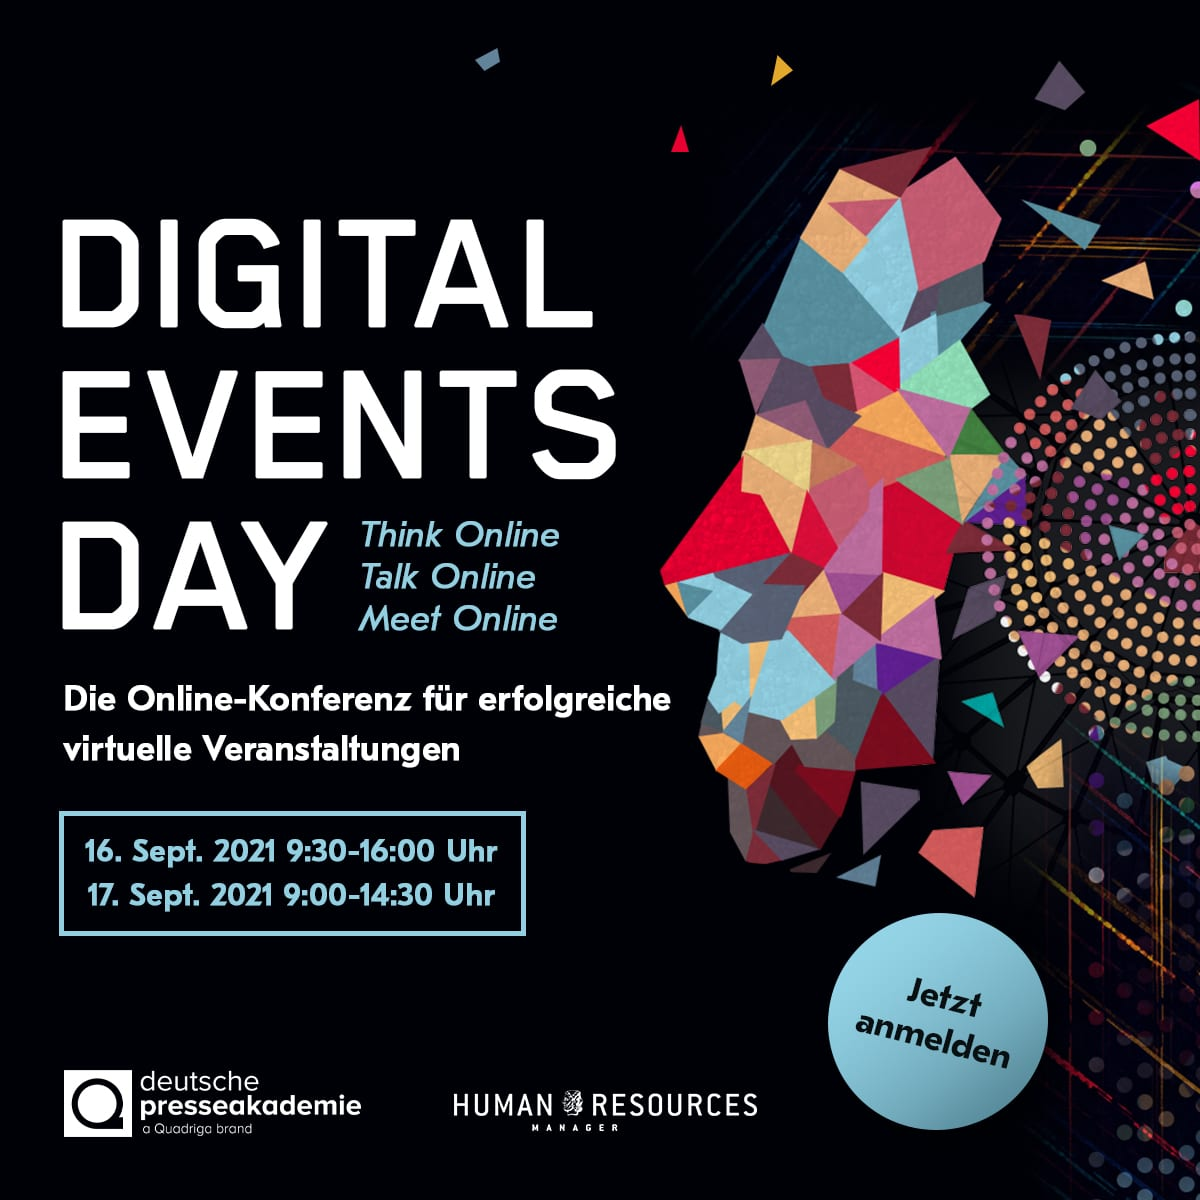 Digital Events Day, 16. - 17.09.2021, in Online